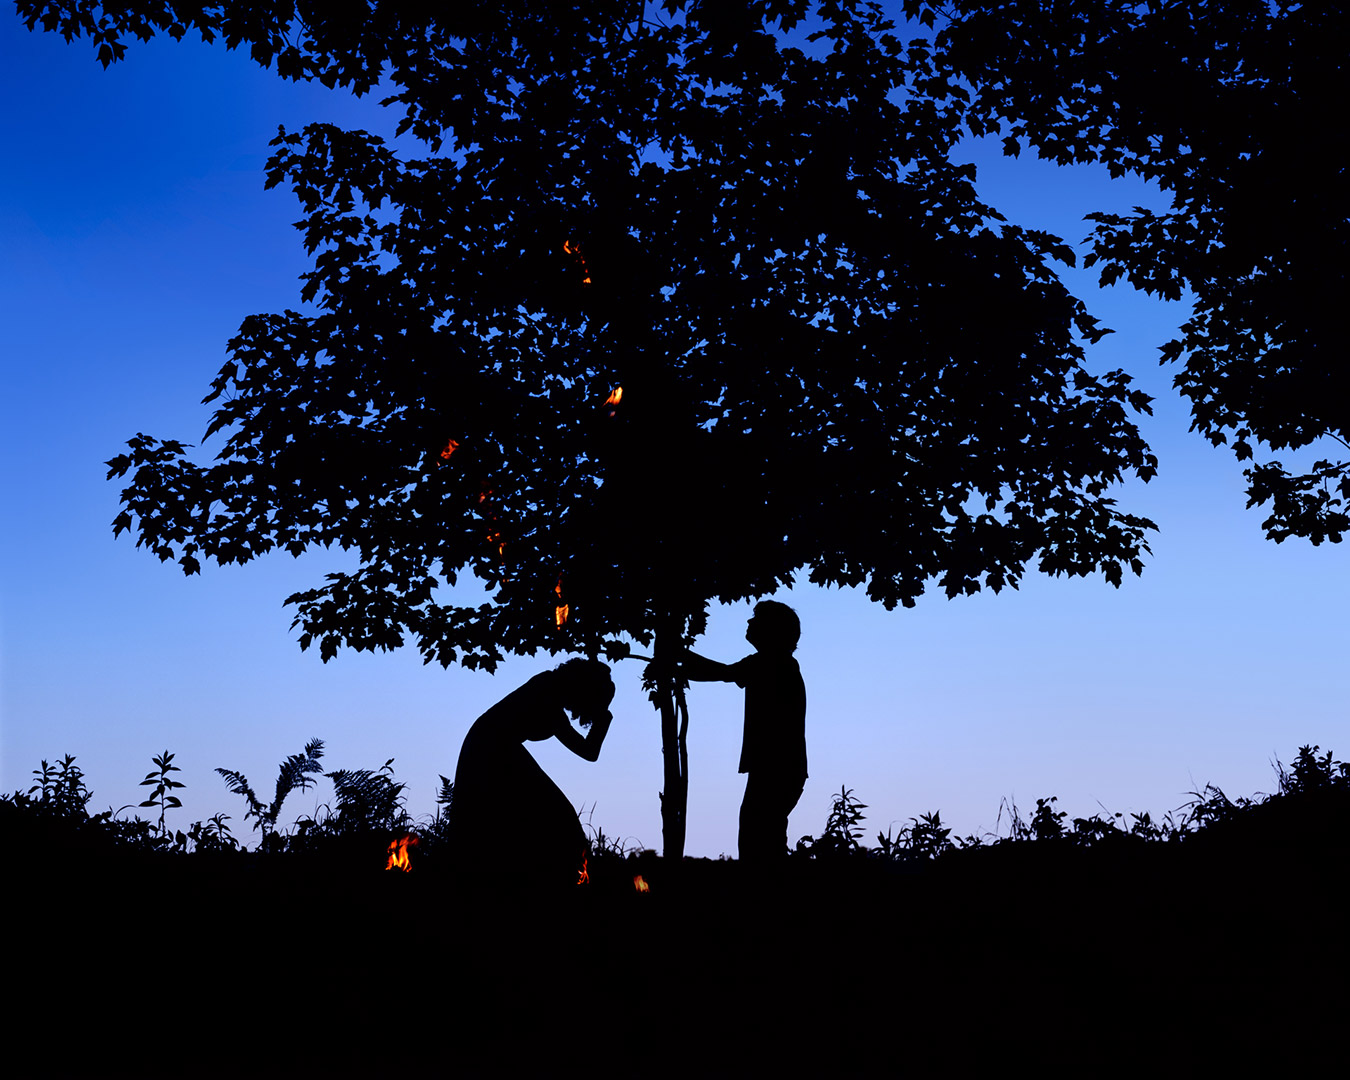 As he shook the tree, burning leaves fell on her, 2009